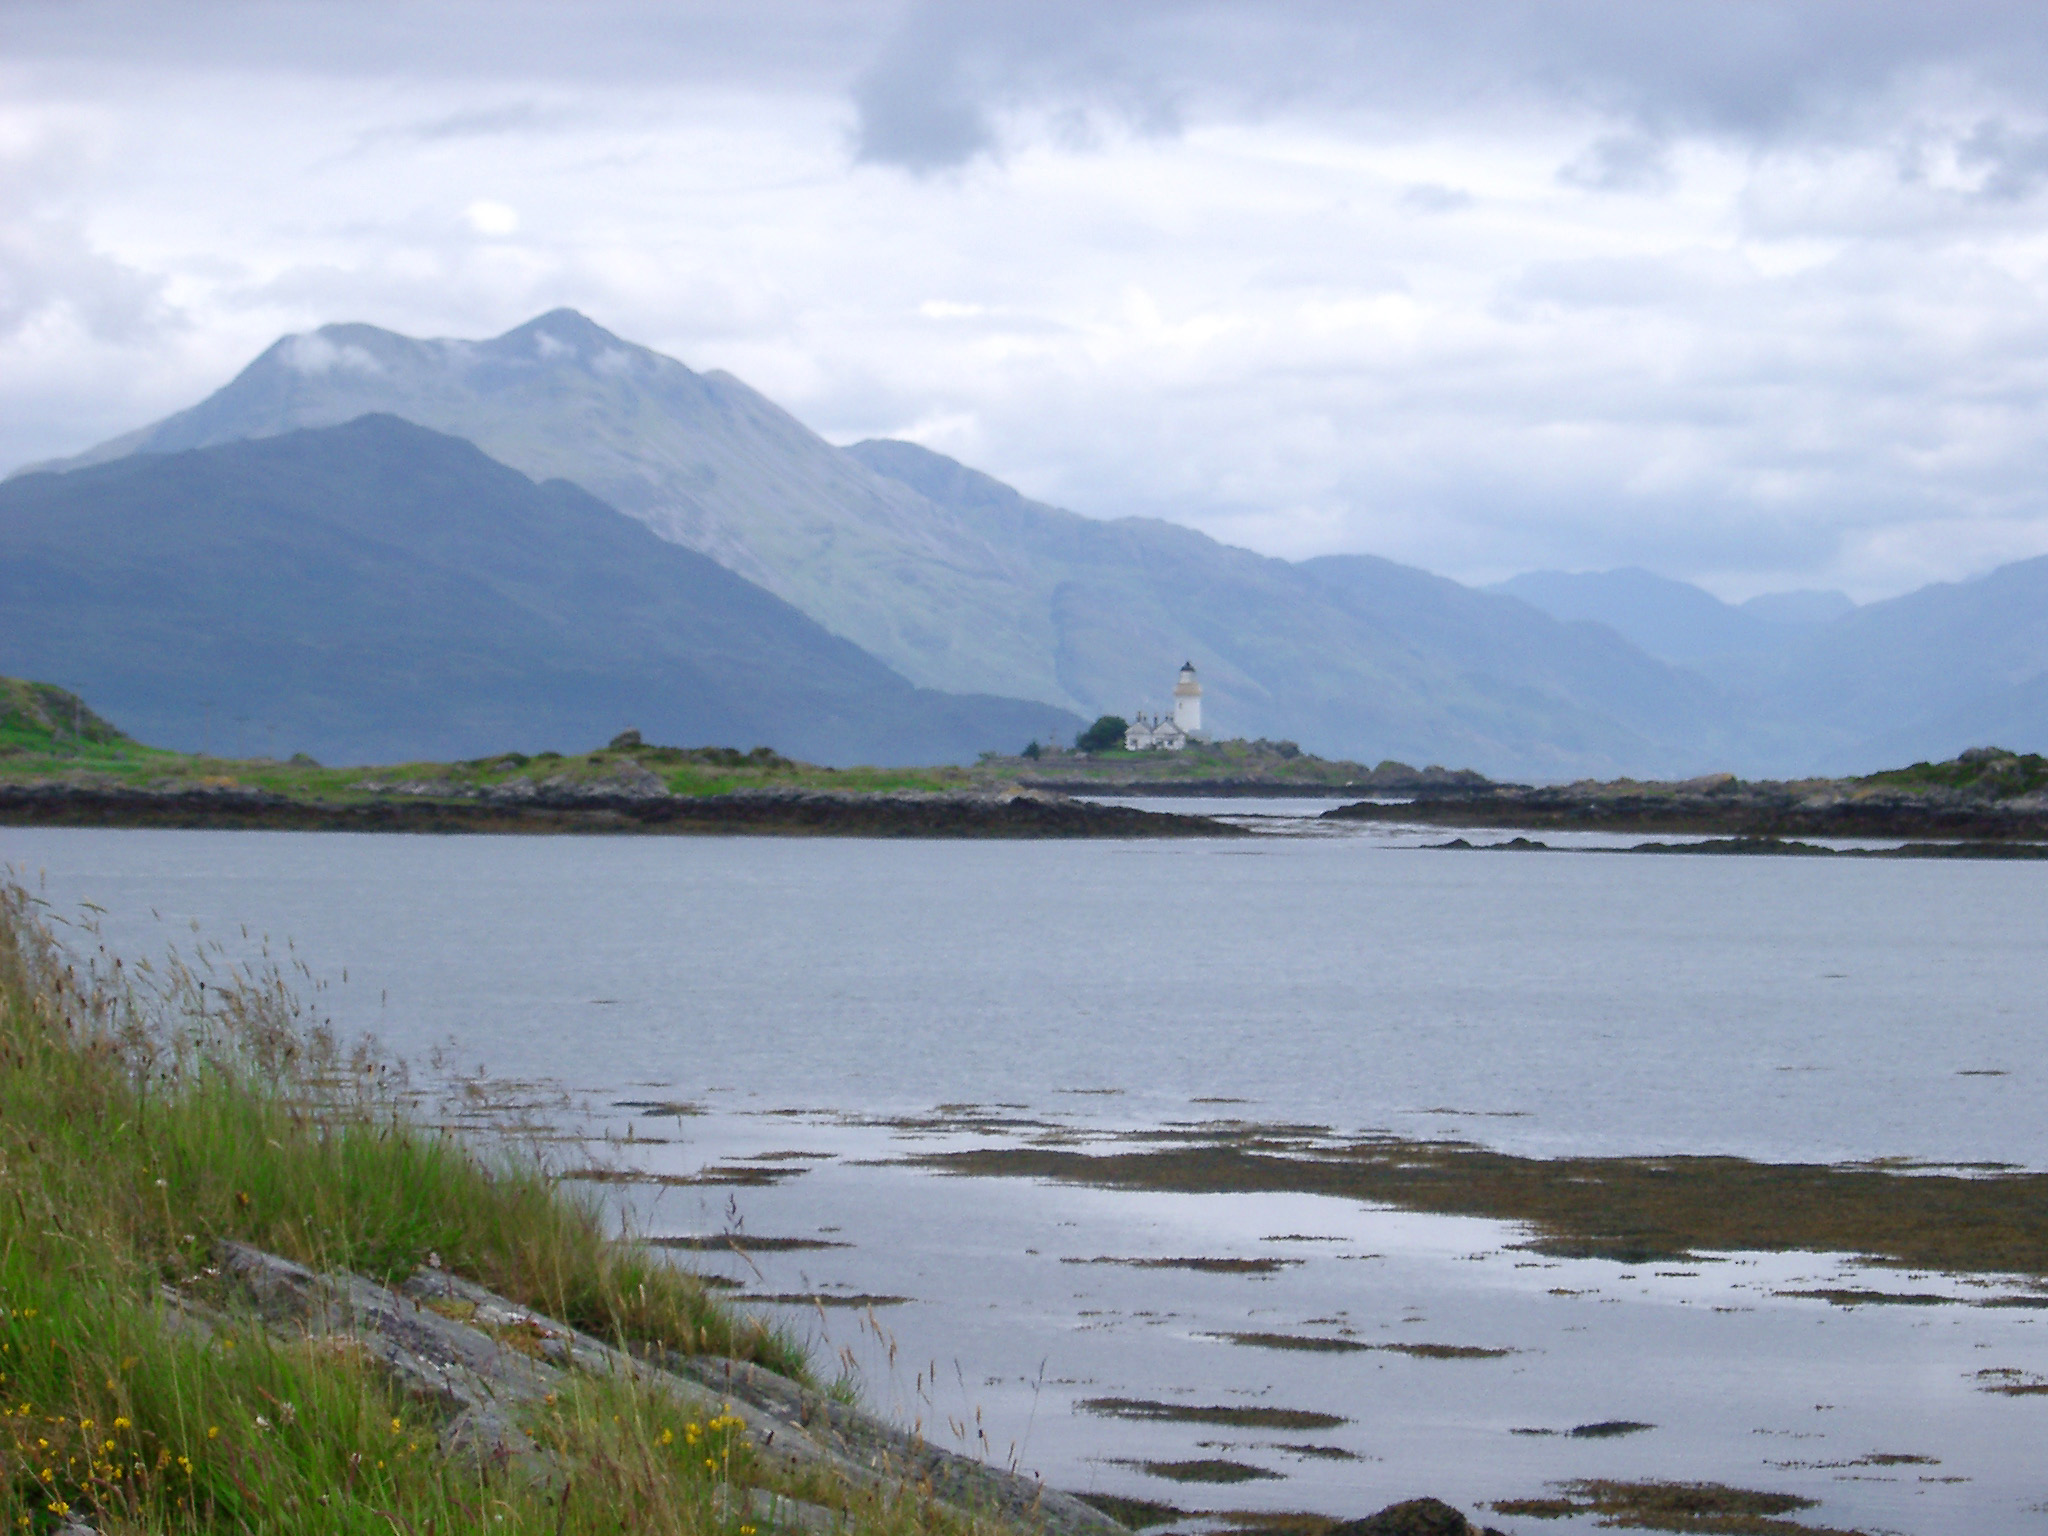 Scenic view across the water of the Isle of Skye and its lighthouse below mountain peaks on a sunny cloudy day